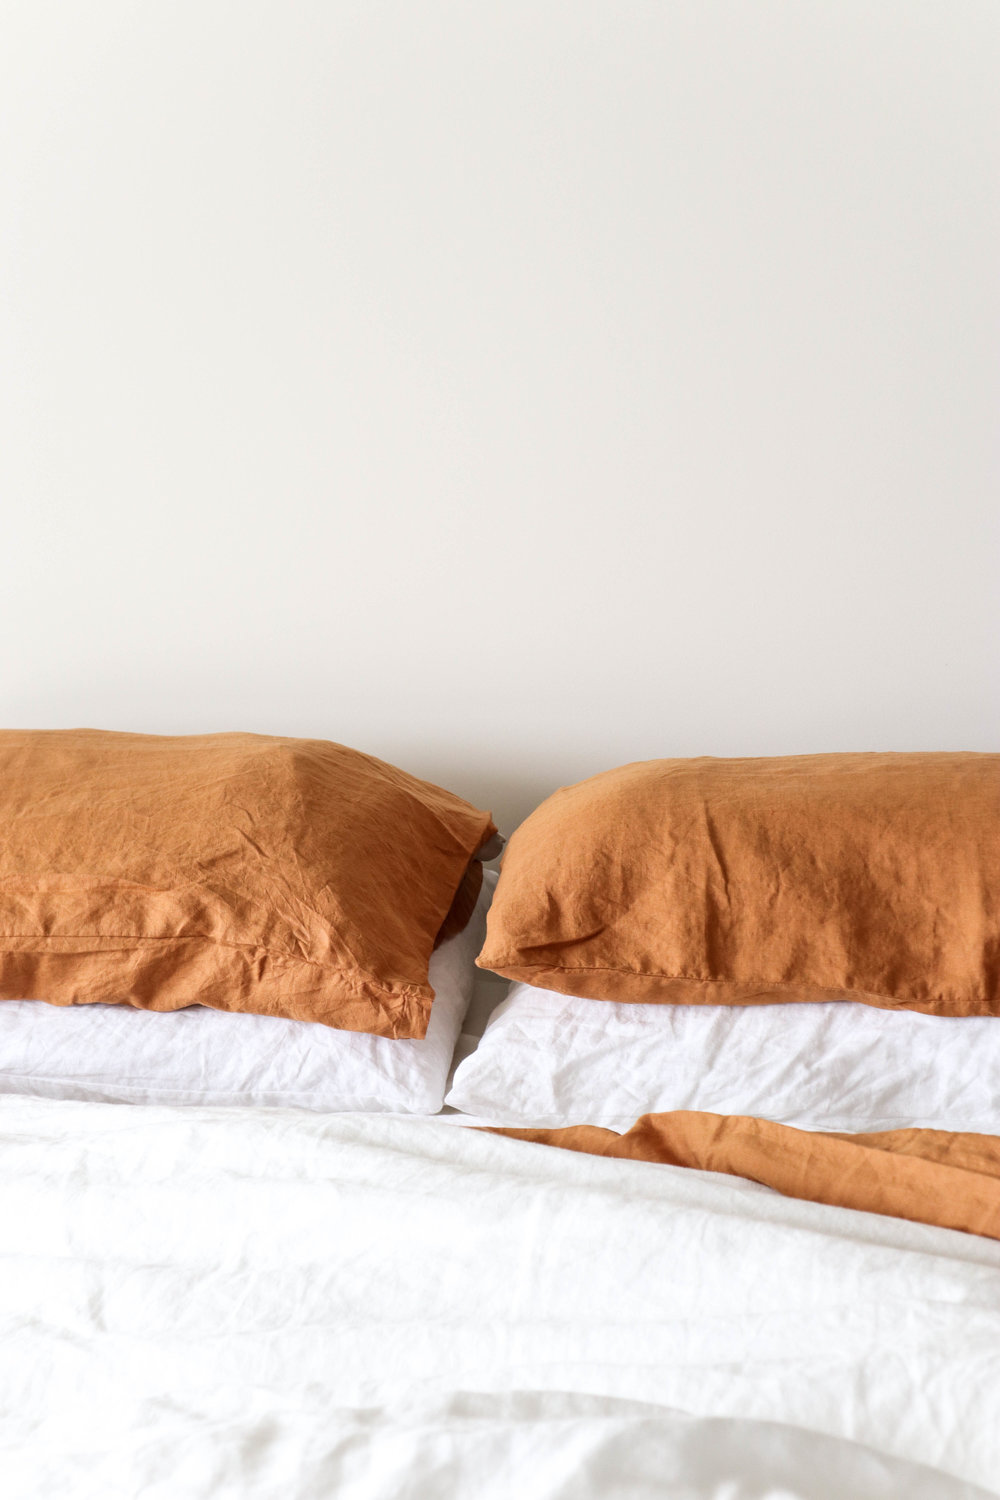 Products shown: Standard pillow cases in Optic White and Tobacco, Duvet Cover in Optic White, Flat Sheet in Tobacco.